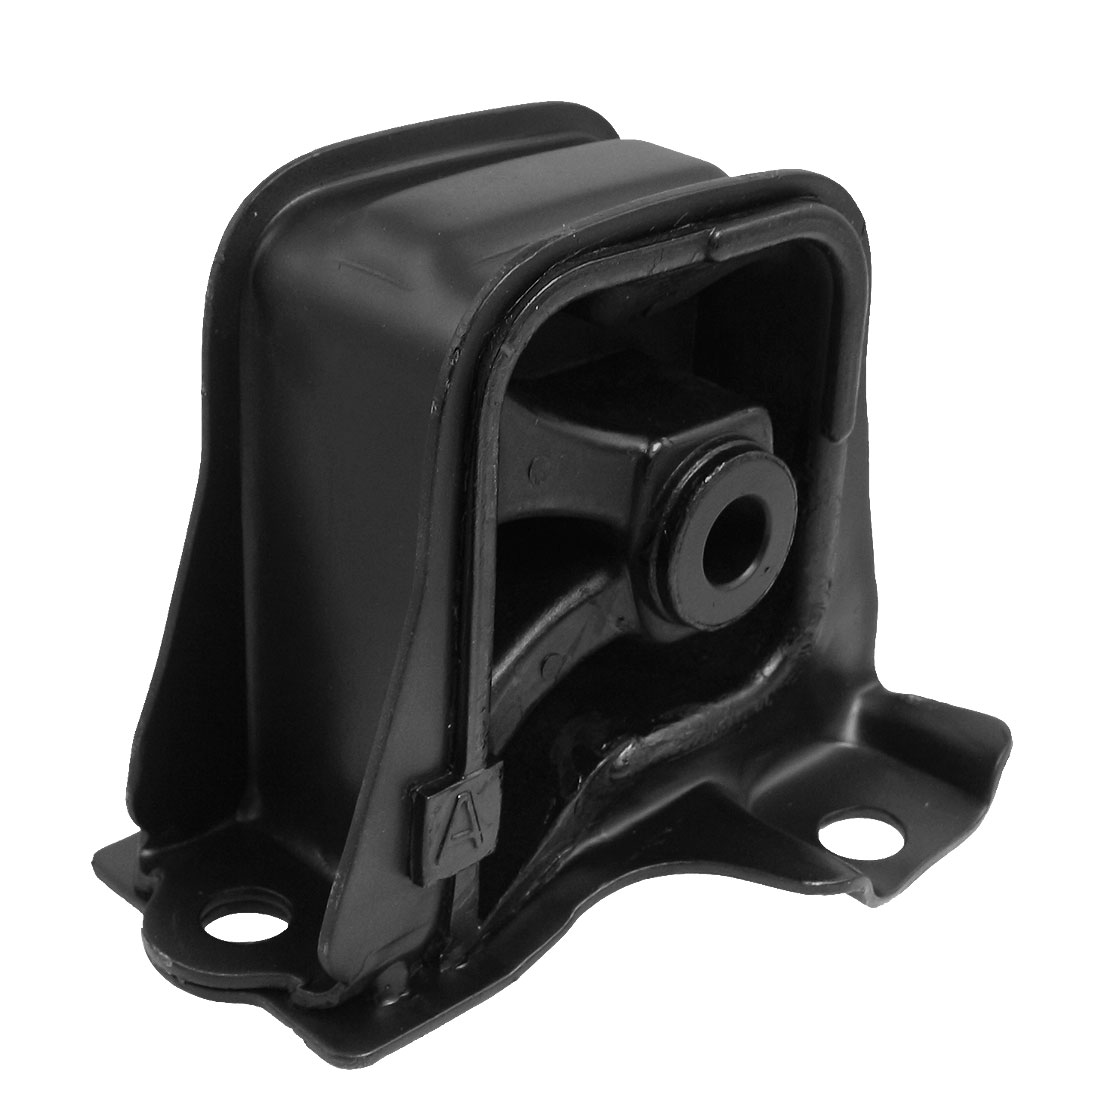 Vehicle Front Engine Motor Mount Stopper Assembly Black 50840-S84-A00